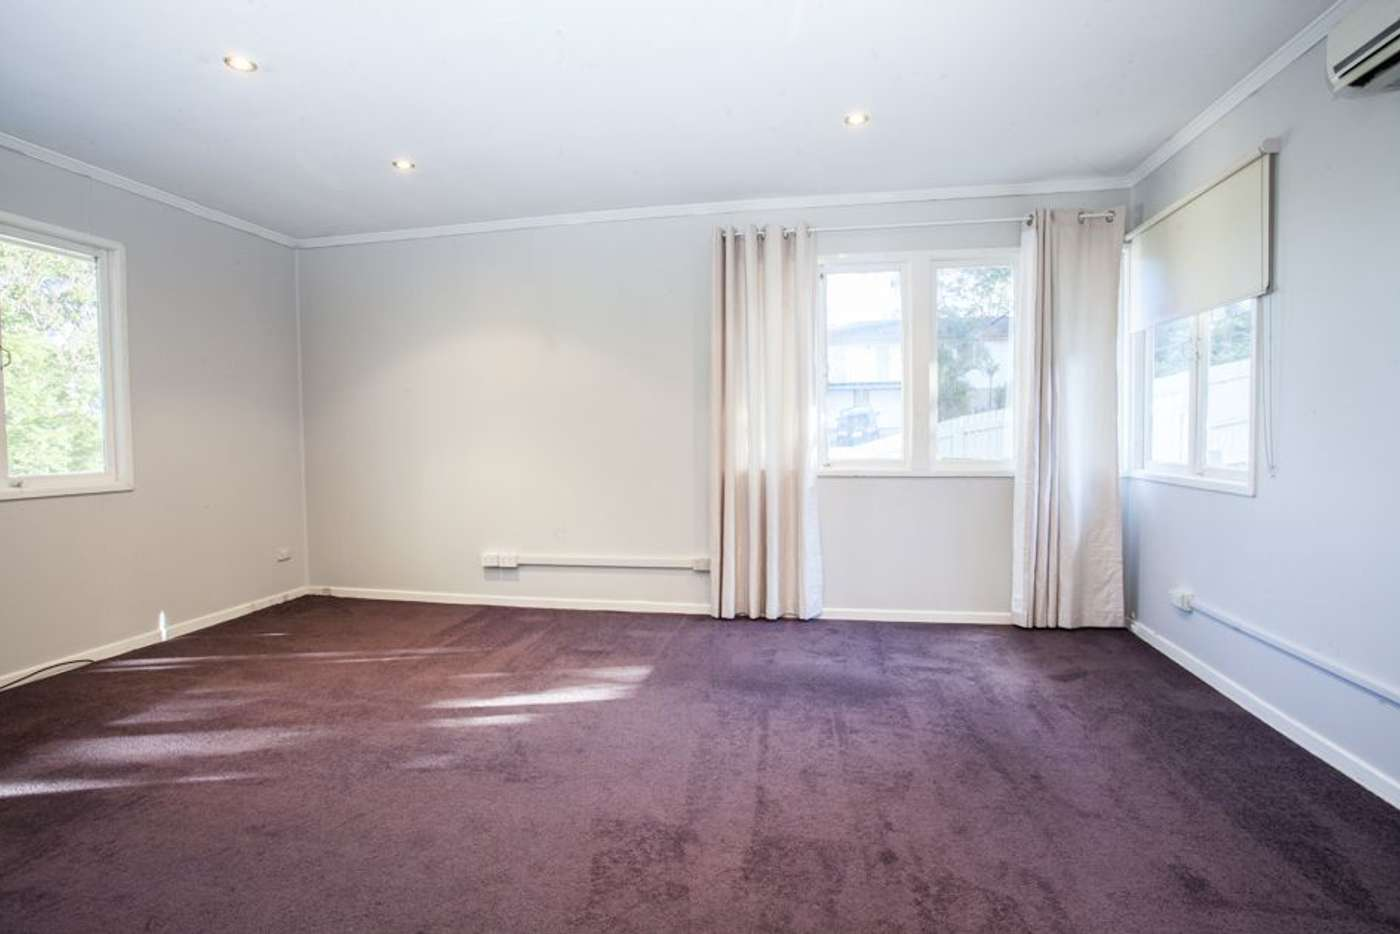 Seventh view of Homely house listing, 44 Queens Road, Slacks Creek QLD 4127